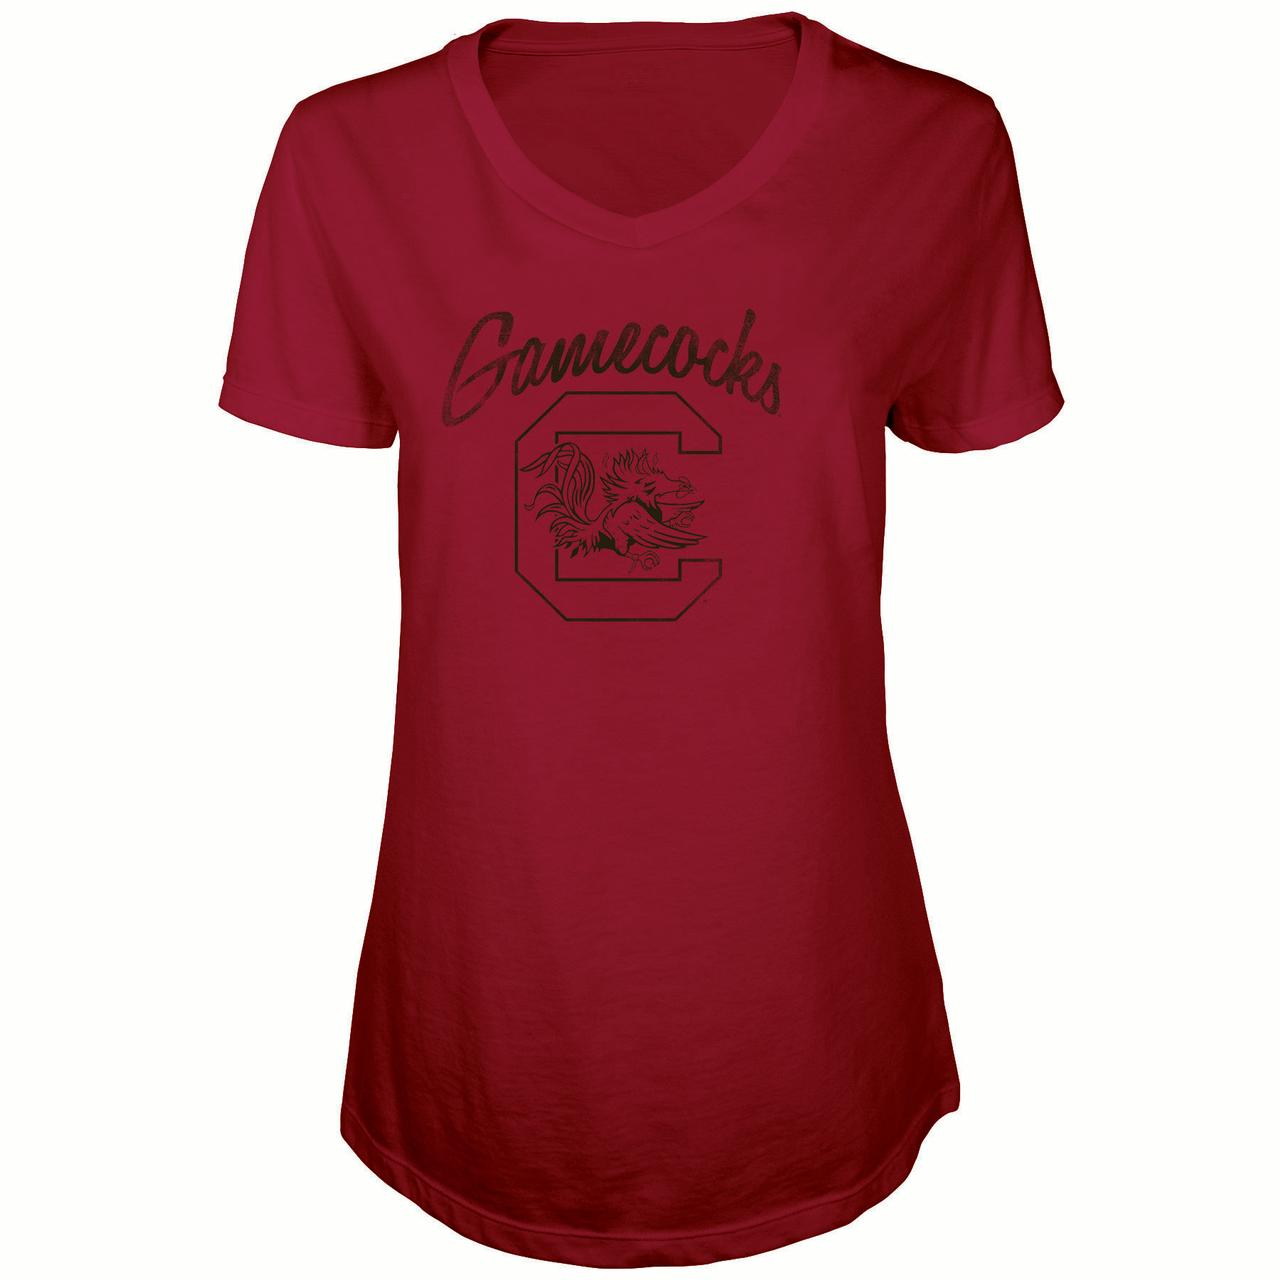 Women's Russell Garnet South Carolina Gamecocks Distressed V-Neck Tunic T-Shirt